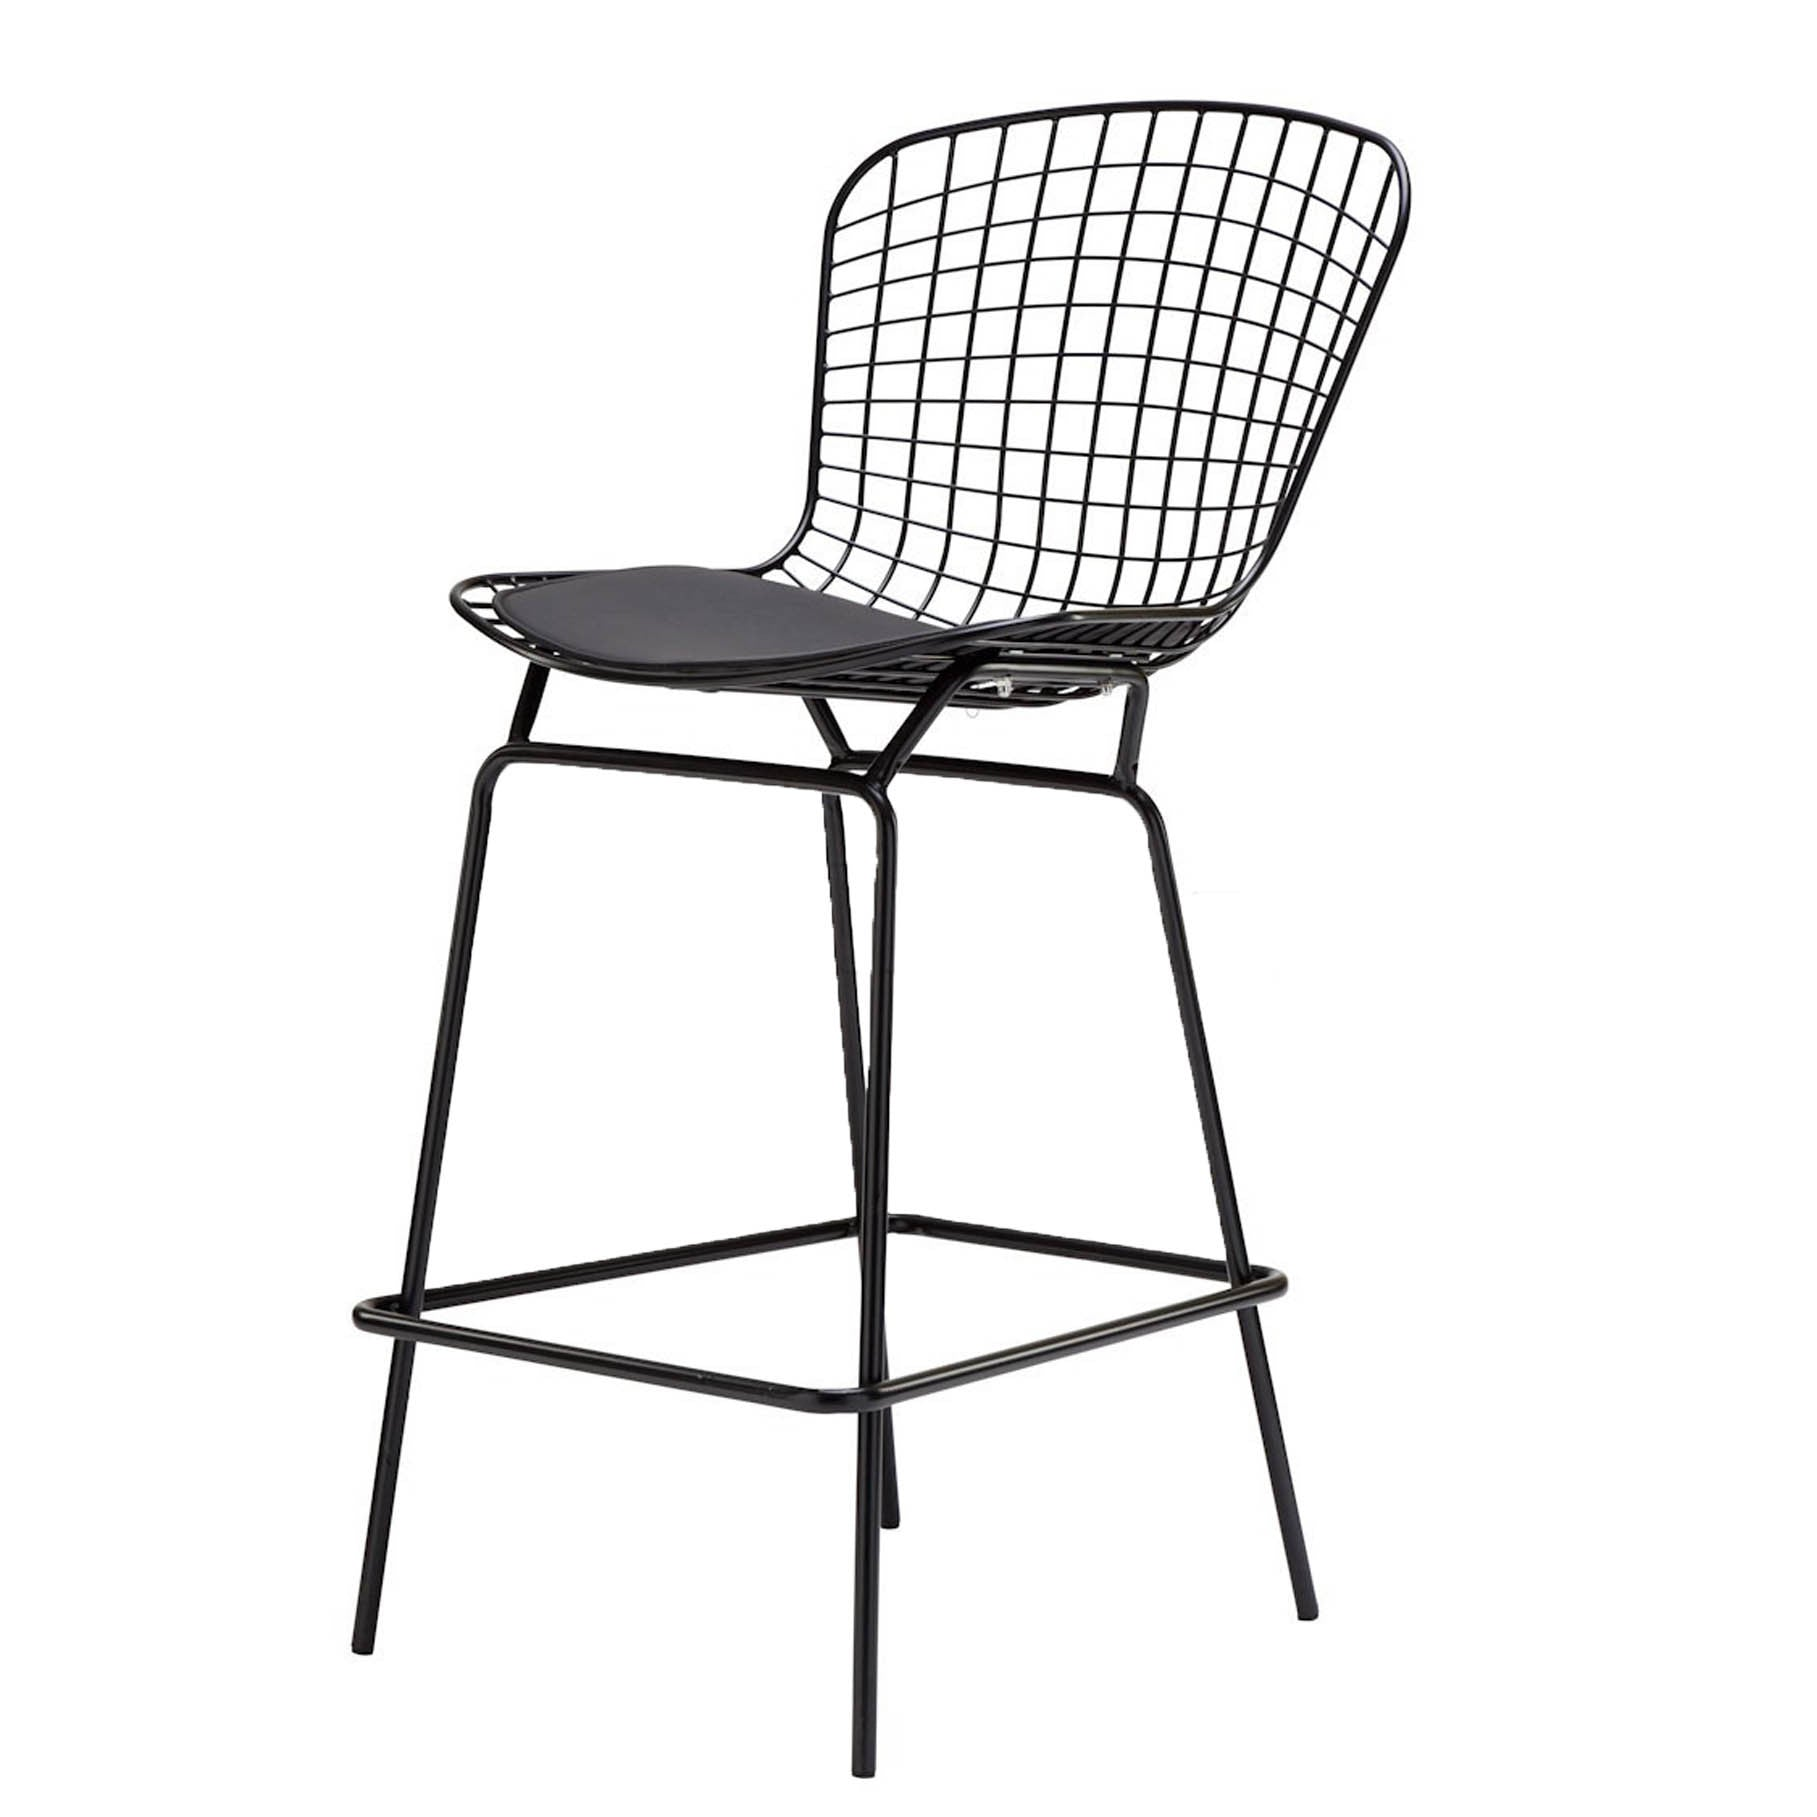 Wire Bar Stool & Cushion MC-020Q-B/Bp8601 -  كرسي سلك بار والوسادة - Shop Online Furniture and Home Decor Store in Dubai, UAE at ebarza